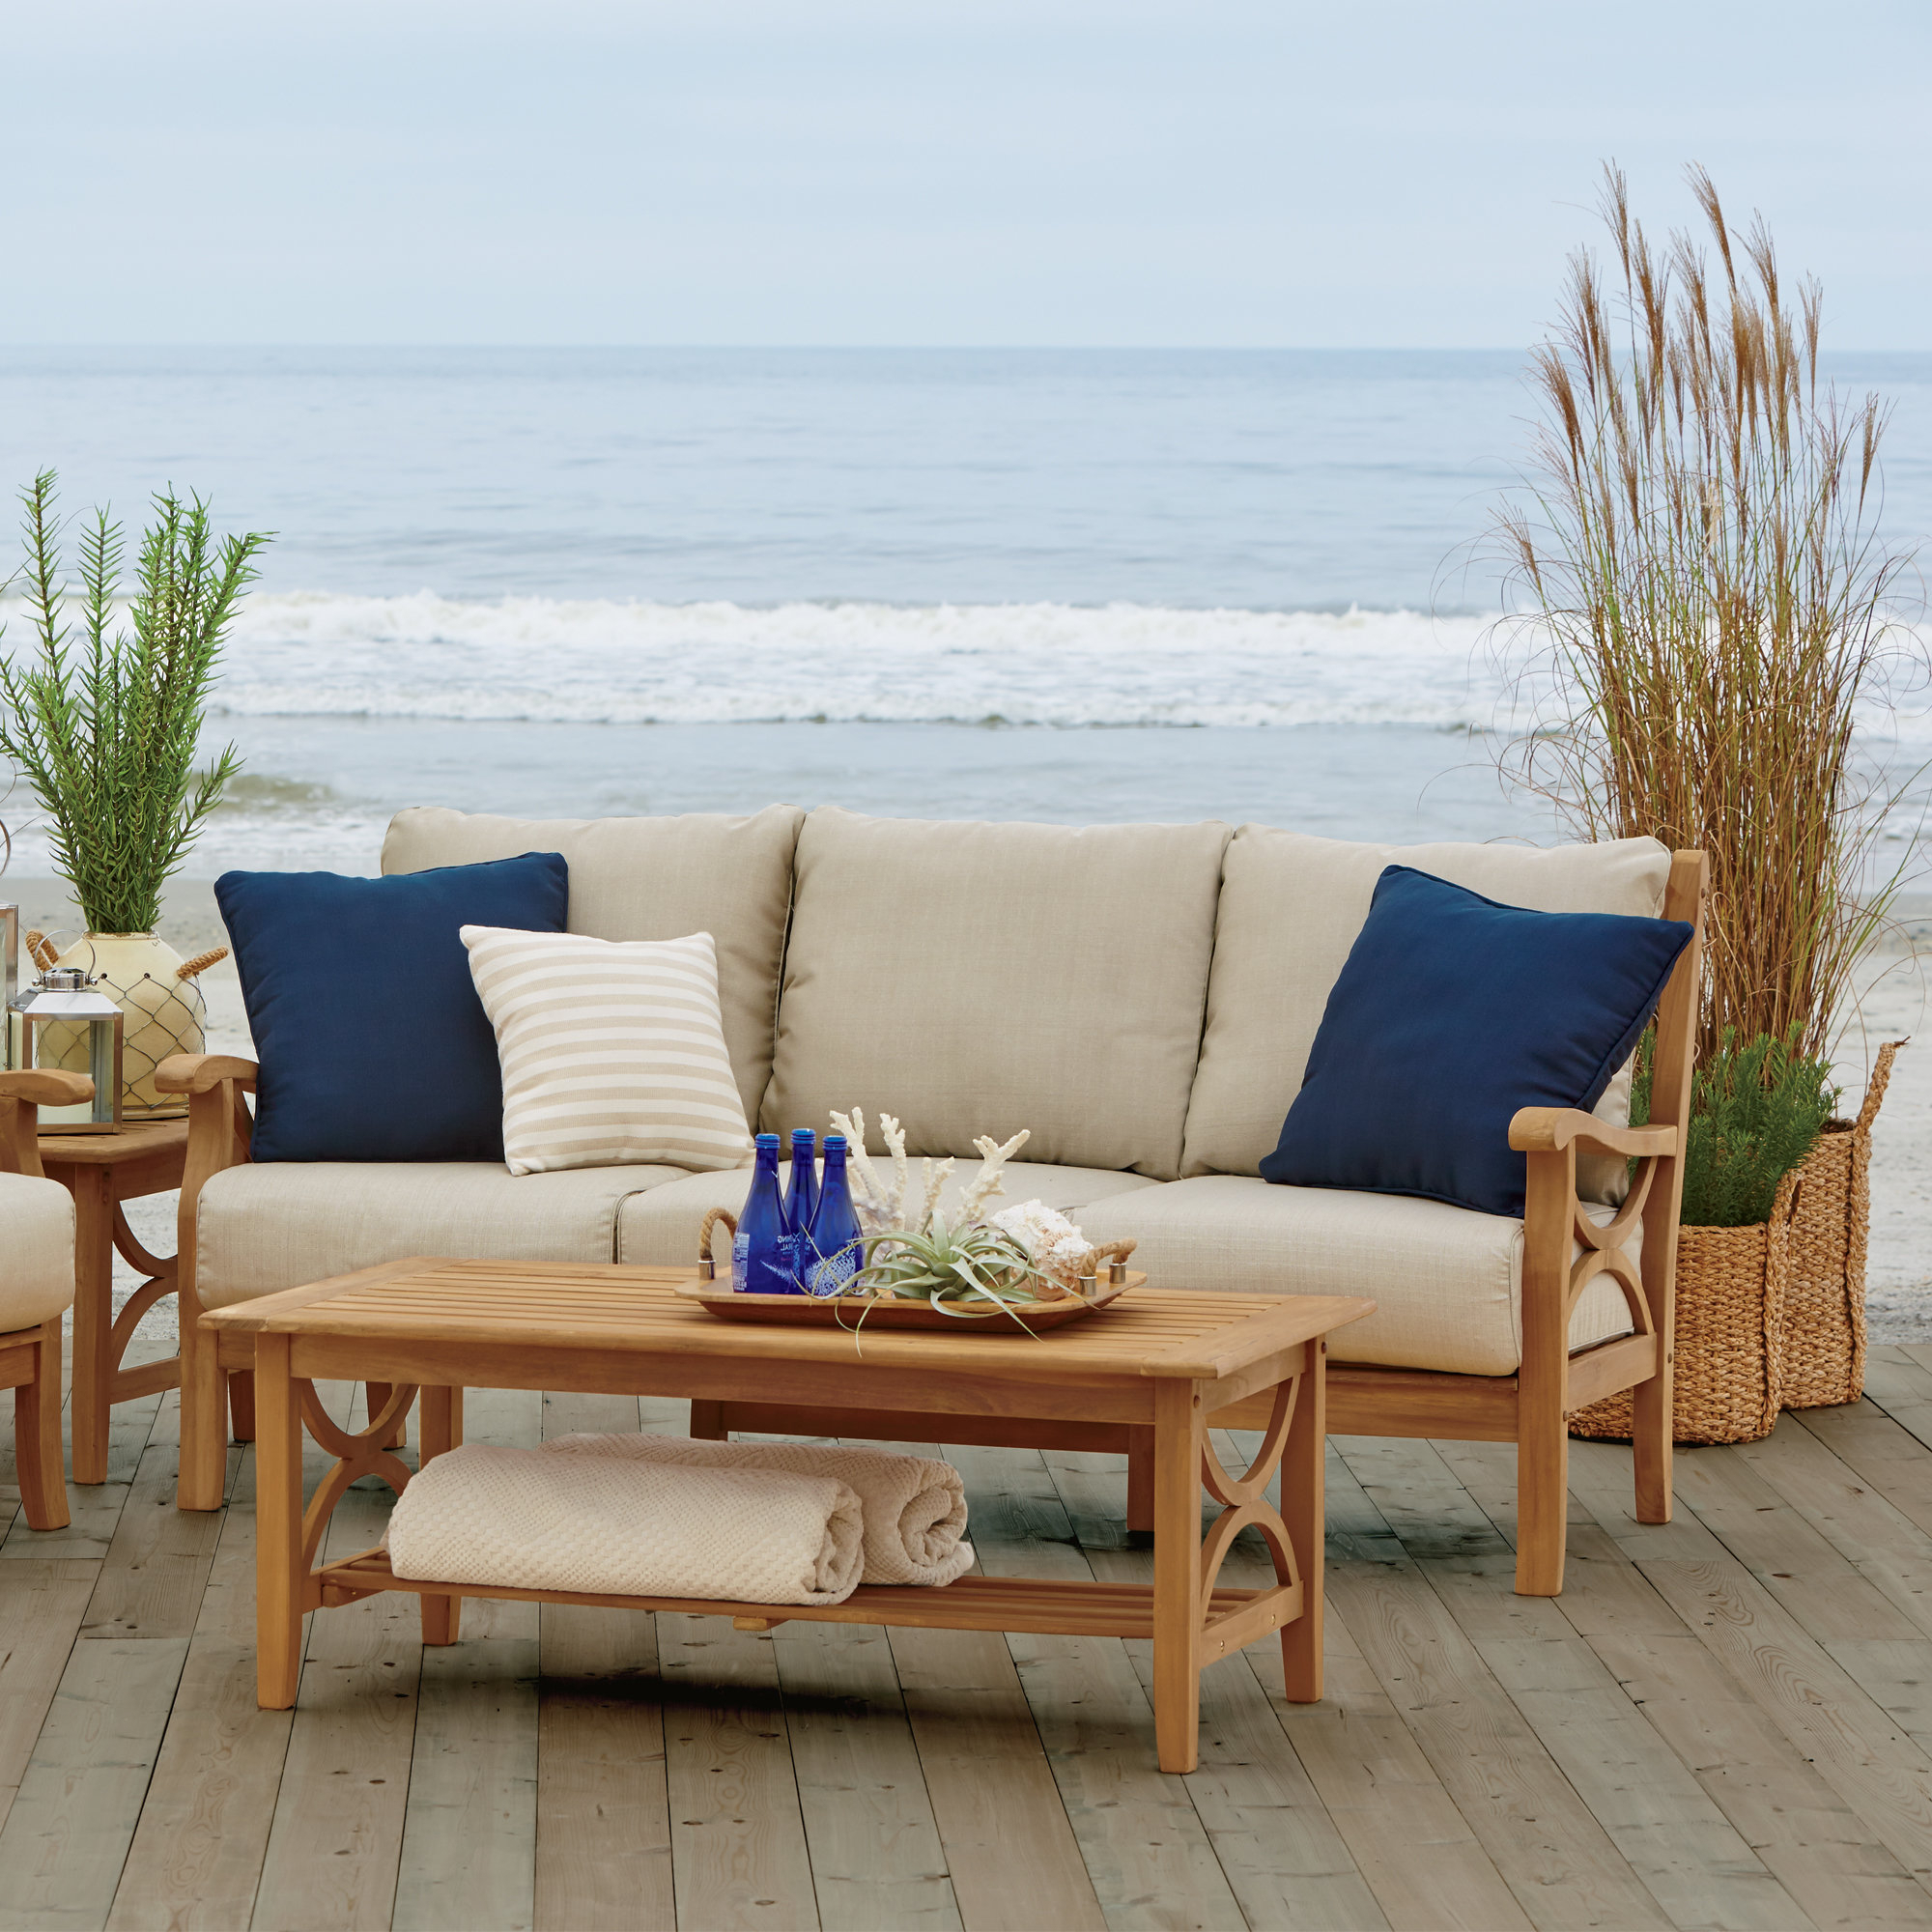 Most Recent Lakeland Teak Patio Sofas With Cushions In Brunswick Teak Patio Sofa With Cushions (View 15 of 20)